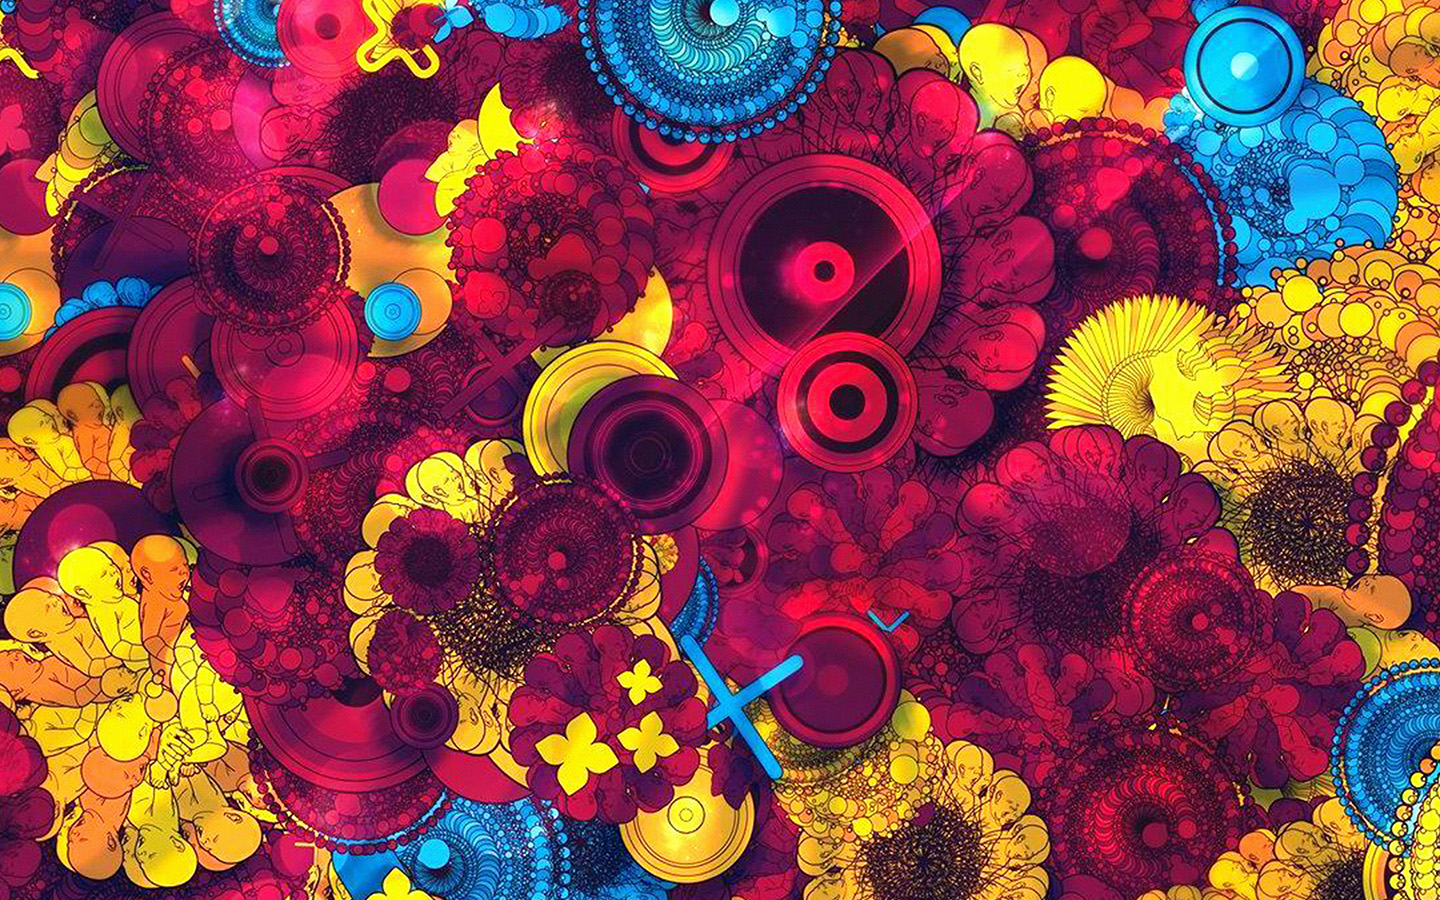 Classic 3d Desktop Wallpaper Full Hd Vq58 Abstract Art Red Blue Yellow Color Pattern Wallpaper